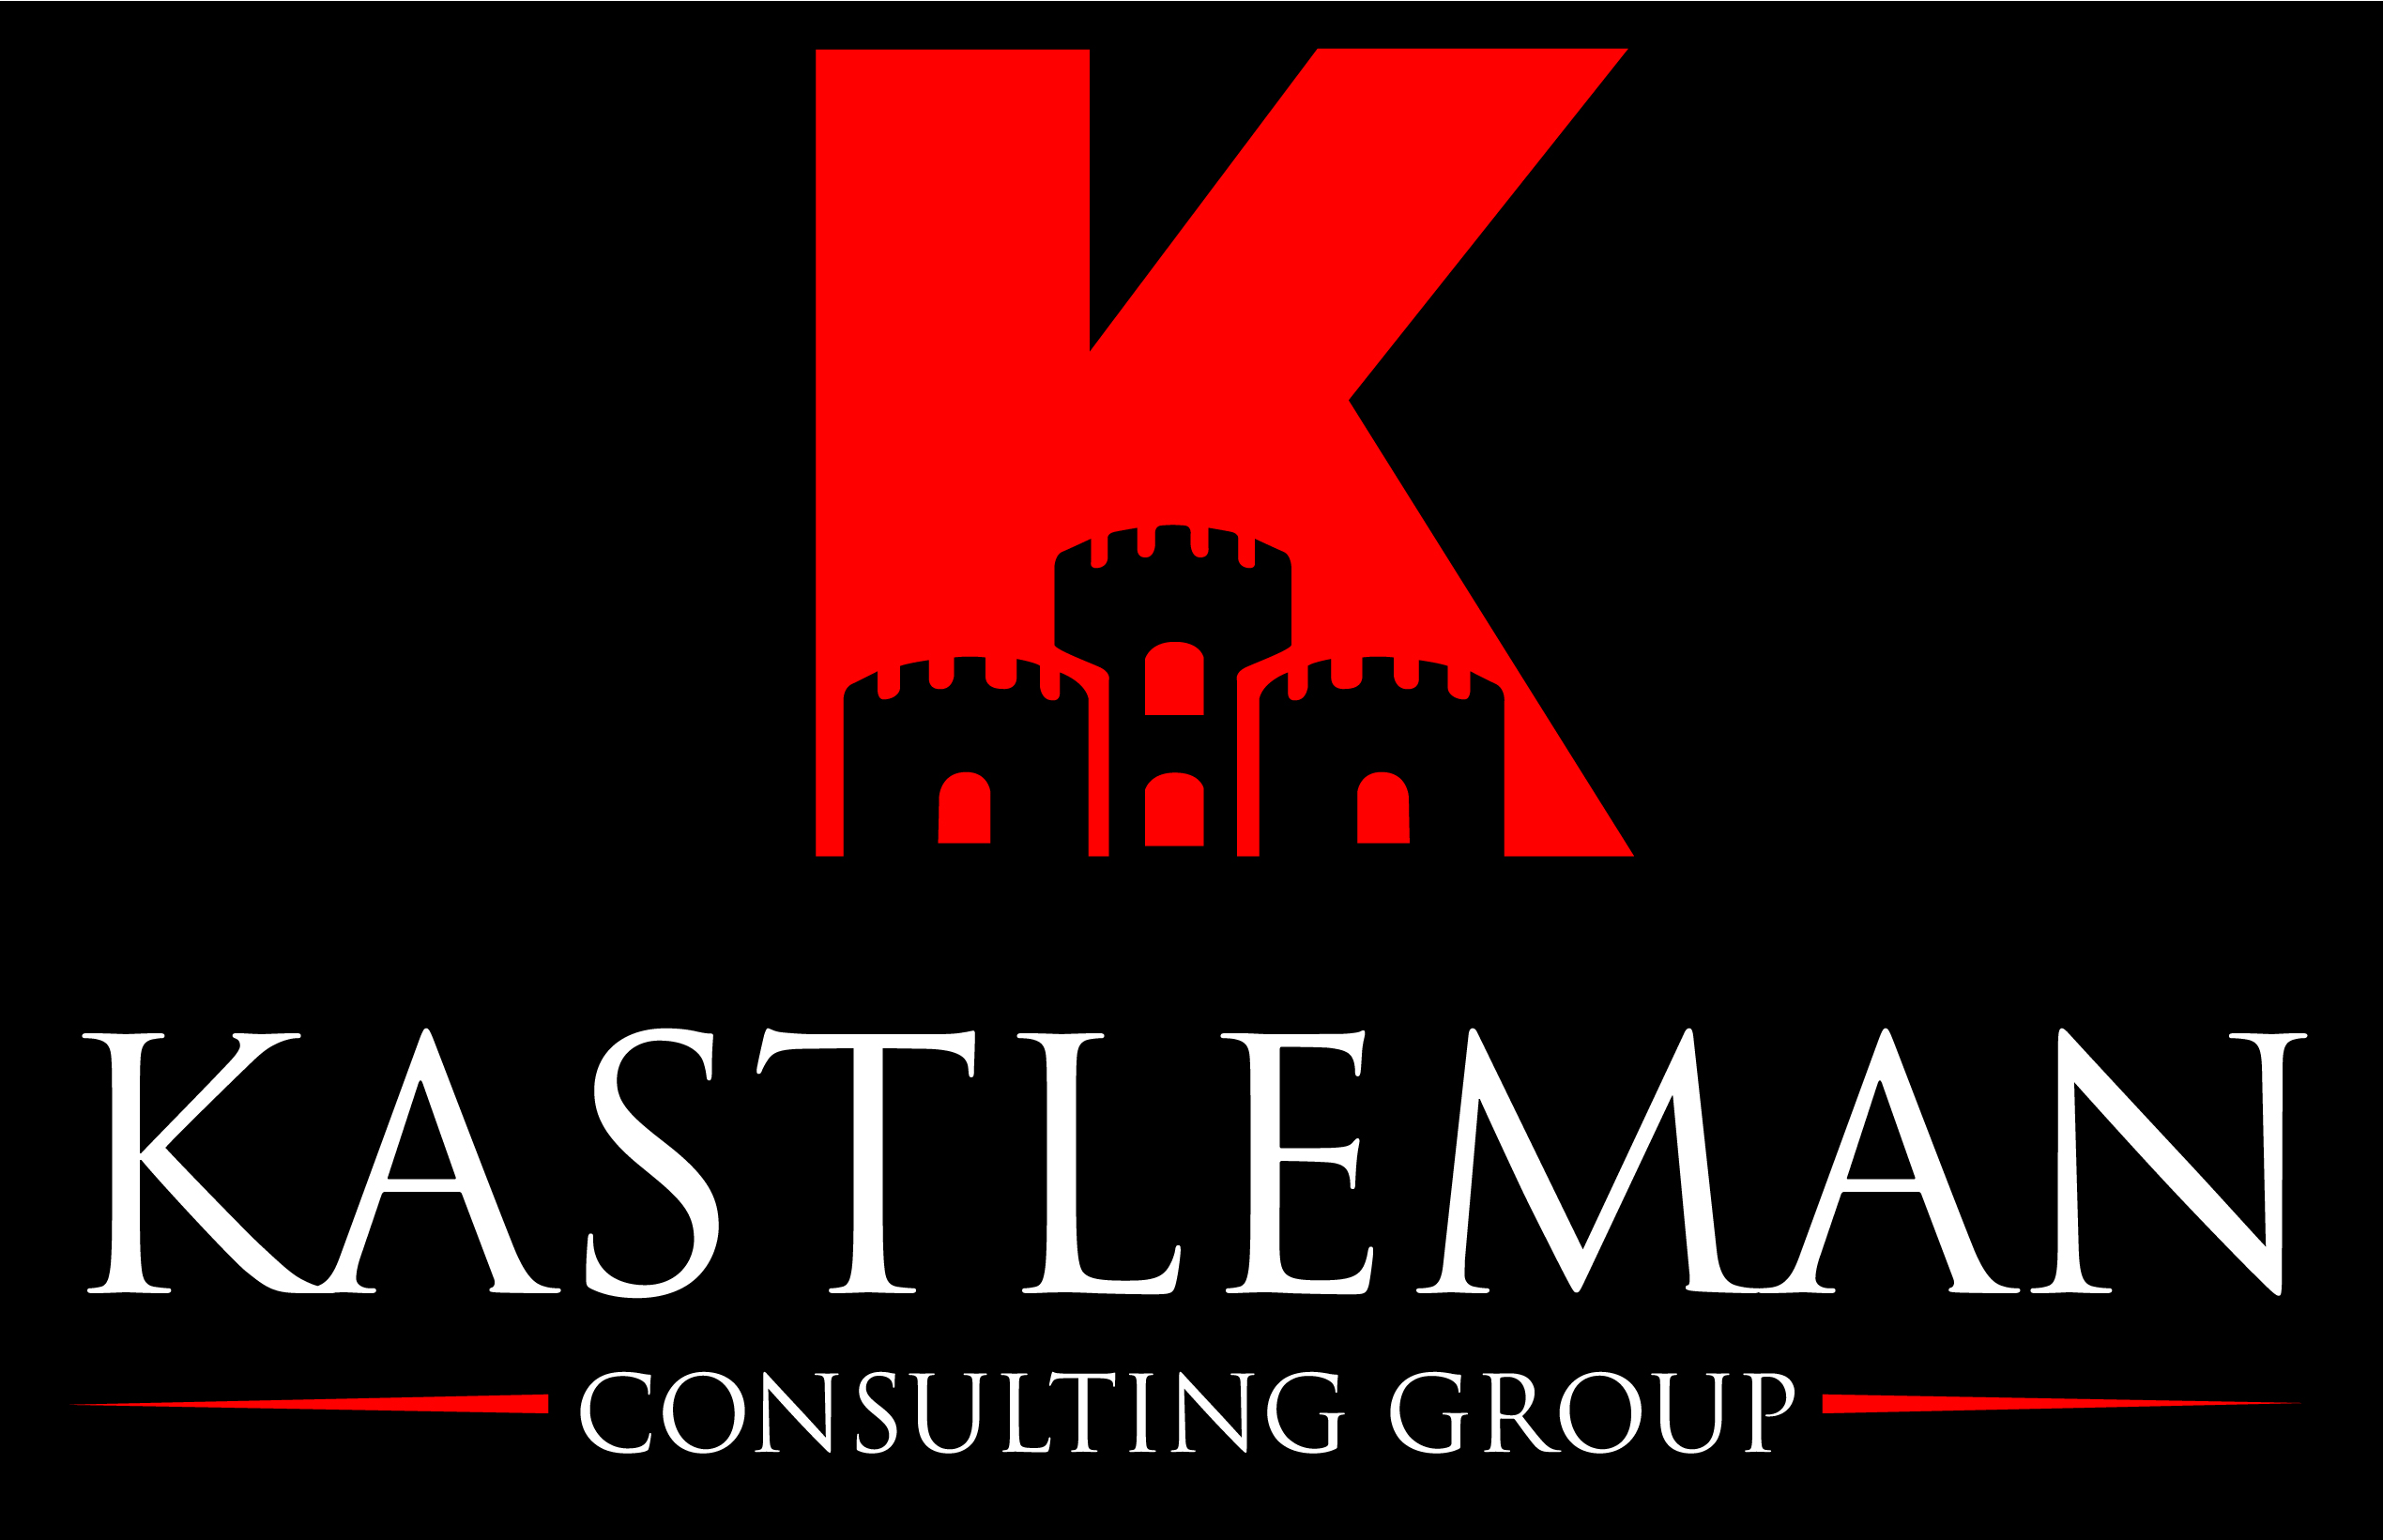 Kastleman Consulting Group